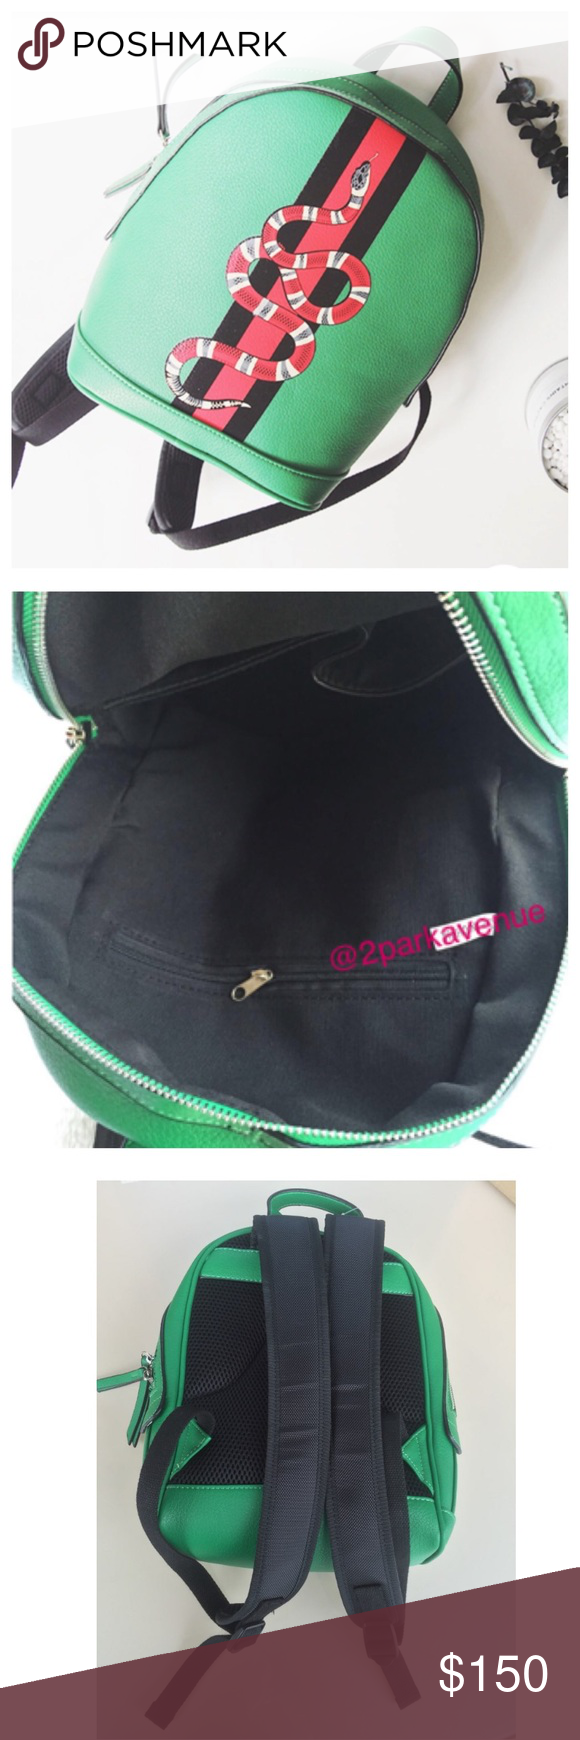 9b5eec5dbe34 NWOT Gucci Web and Snake Style Backpack 📍2 BLACK + 3 GREEN📍 Brand New  Boutique similar to Gucci Web and Snake Style backpacks, in faux leather  material ...